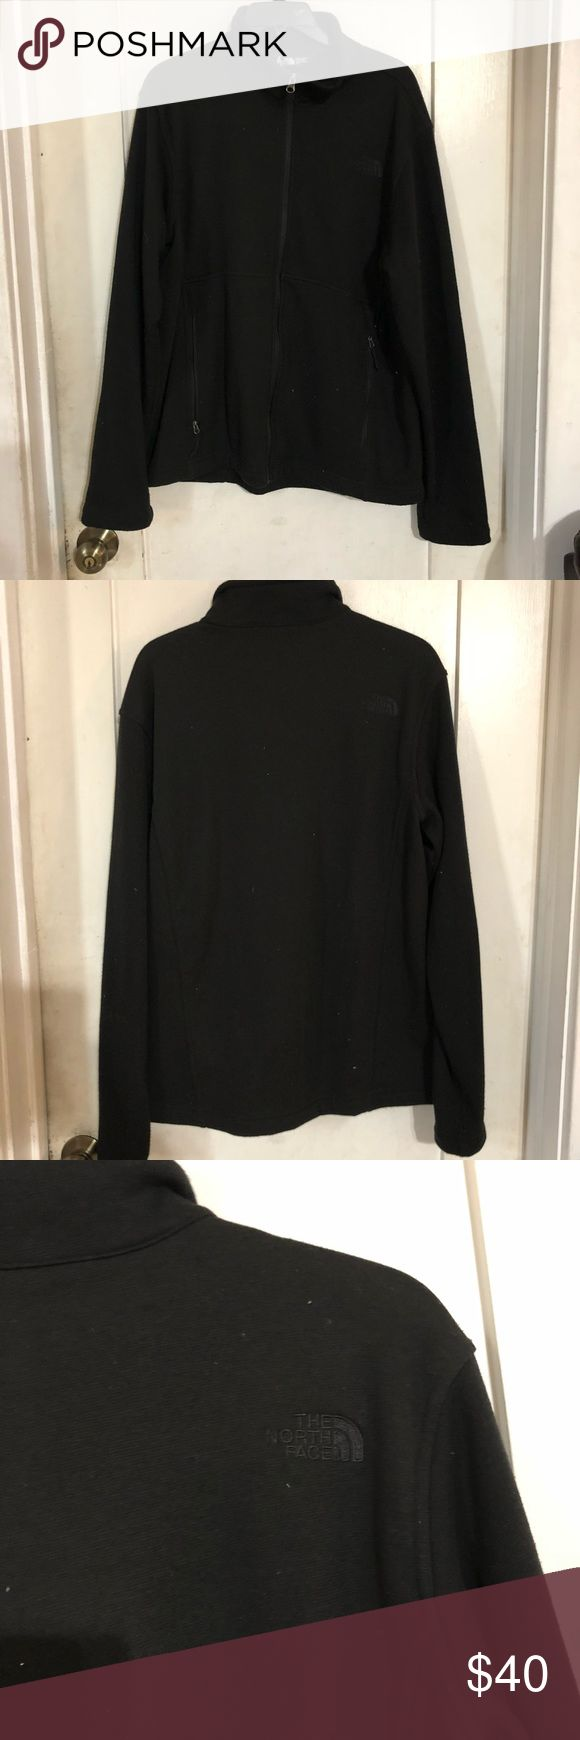 NorthFace men's jacket Used, no holes tears or rips. No smells. Authentic. With visual signs of wear. The North Face Jackets & Coats